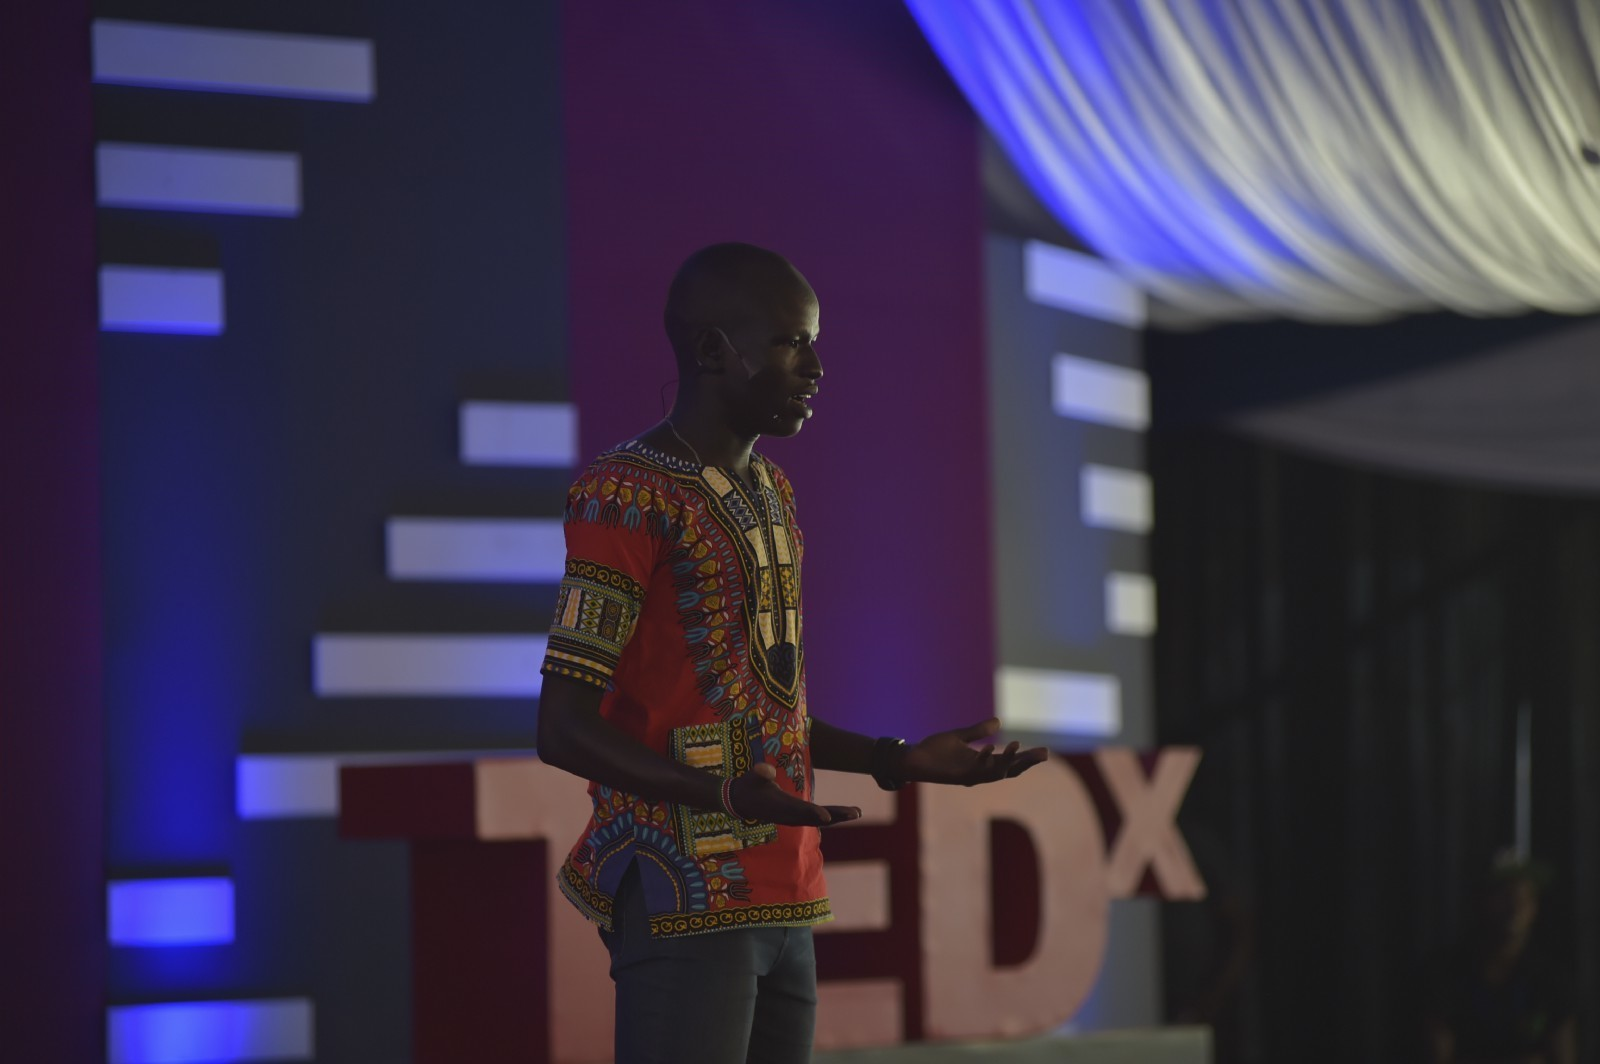 Pur Biel, who grew up in Kakuma refugee camp, on stage at TEDxKakumaCamp.